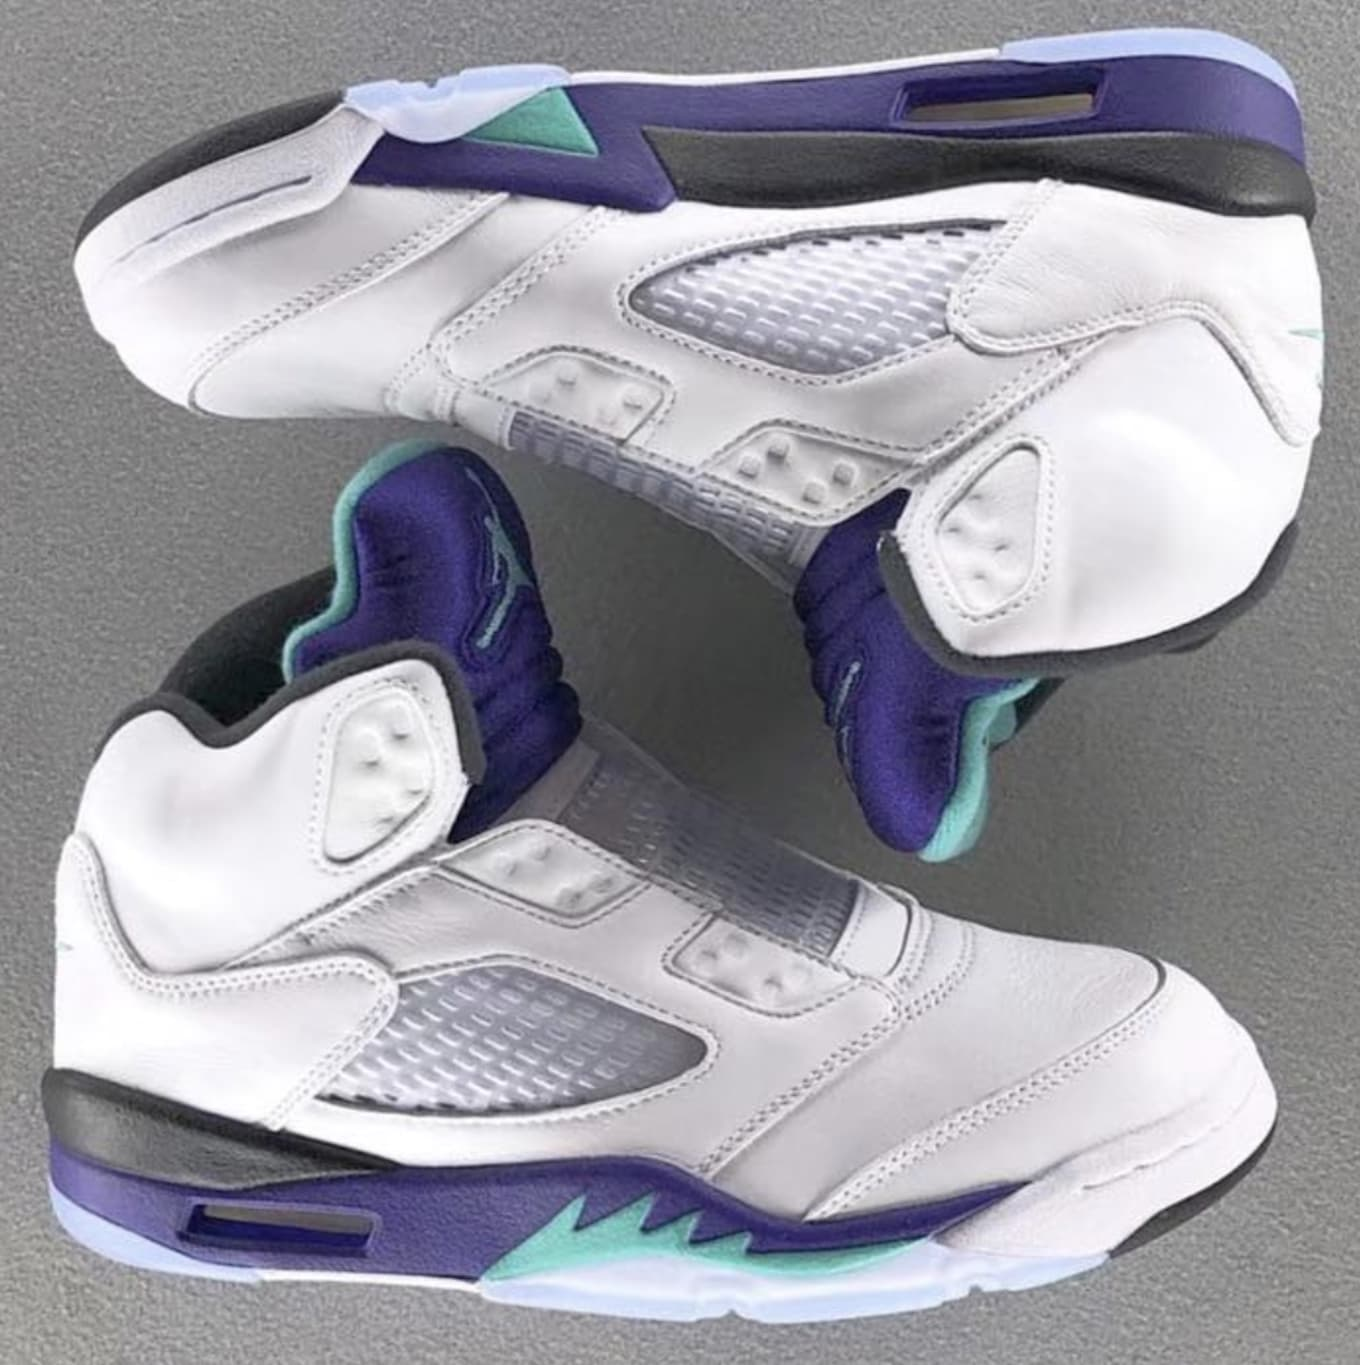 01af83690e14 Air Jordan V 5 Retro NRG  White Grape Ice Black New Emerald  2018 ...